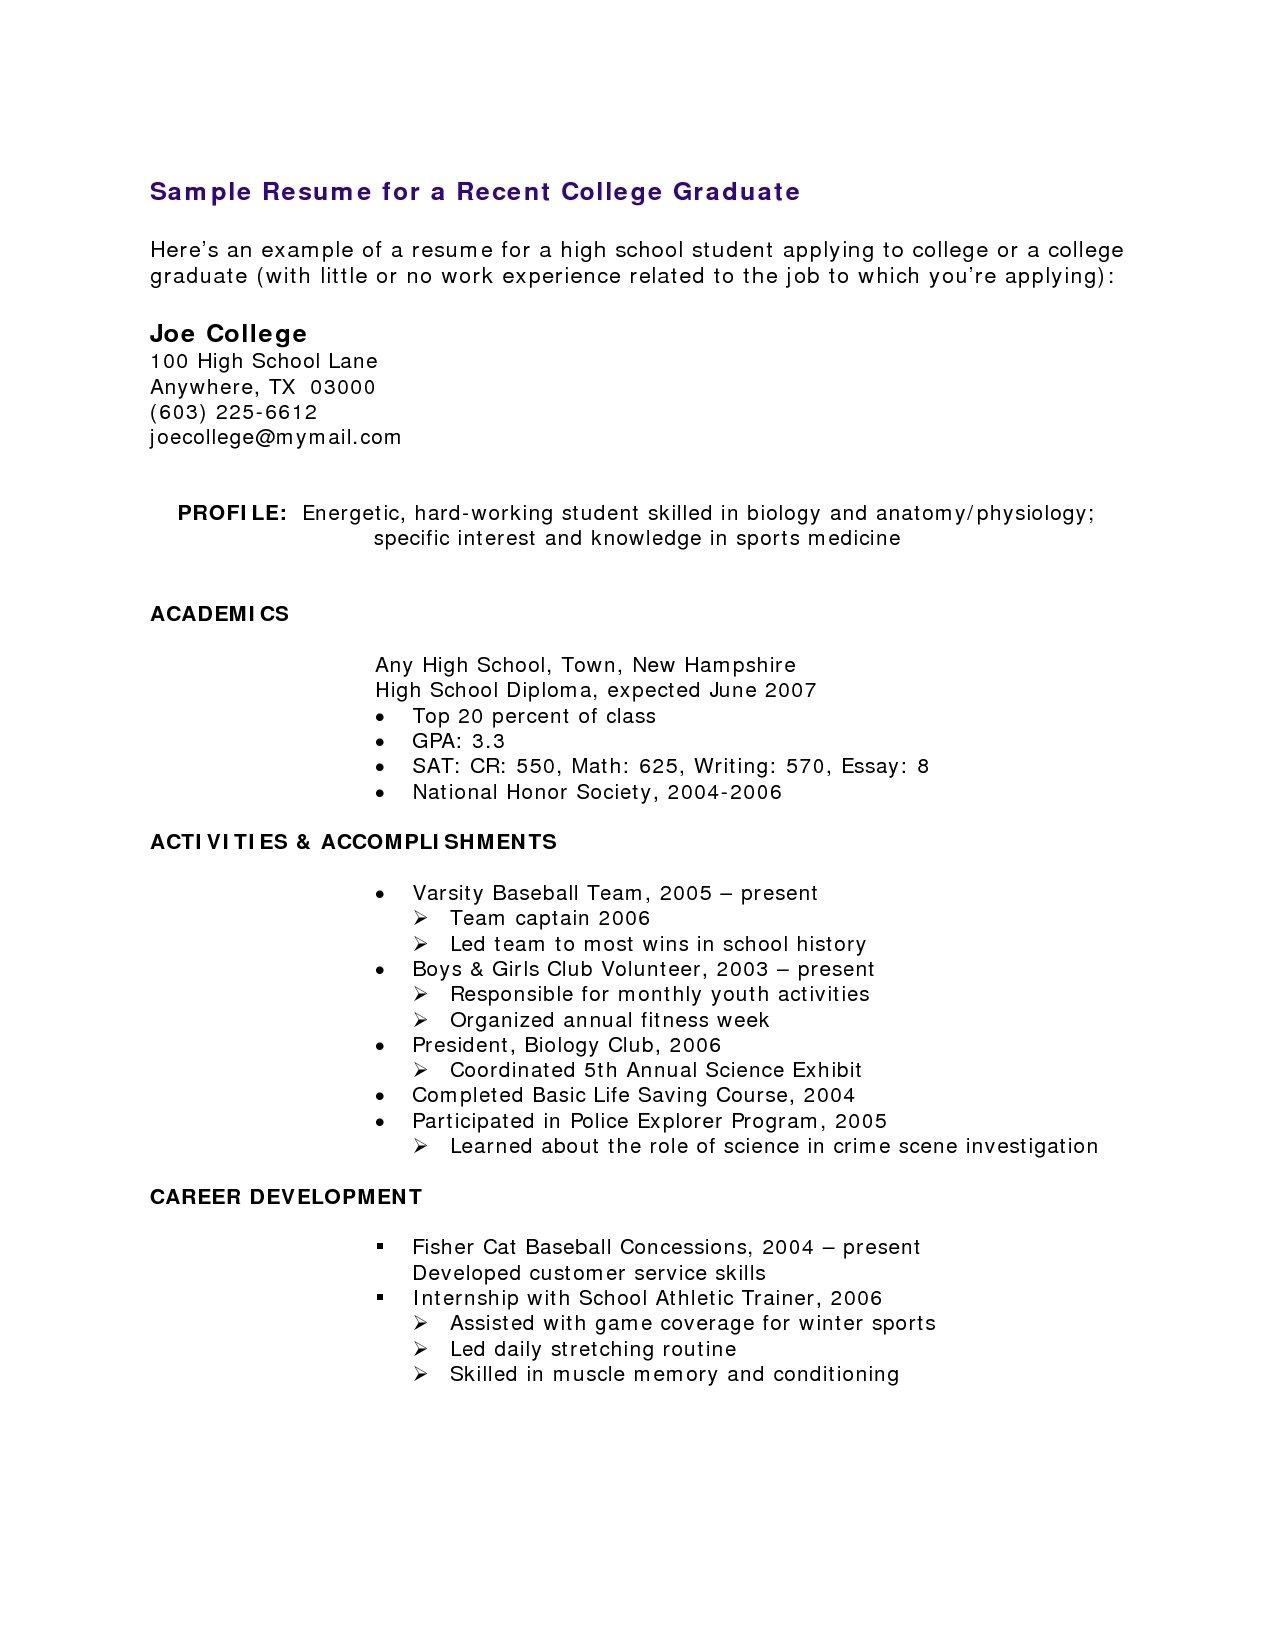 How To Write A Resume With No Work Experience Resume Examples With No Work Experience  Resume  Pinterest .